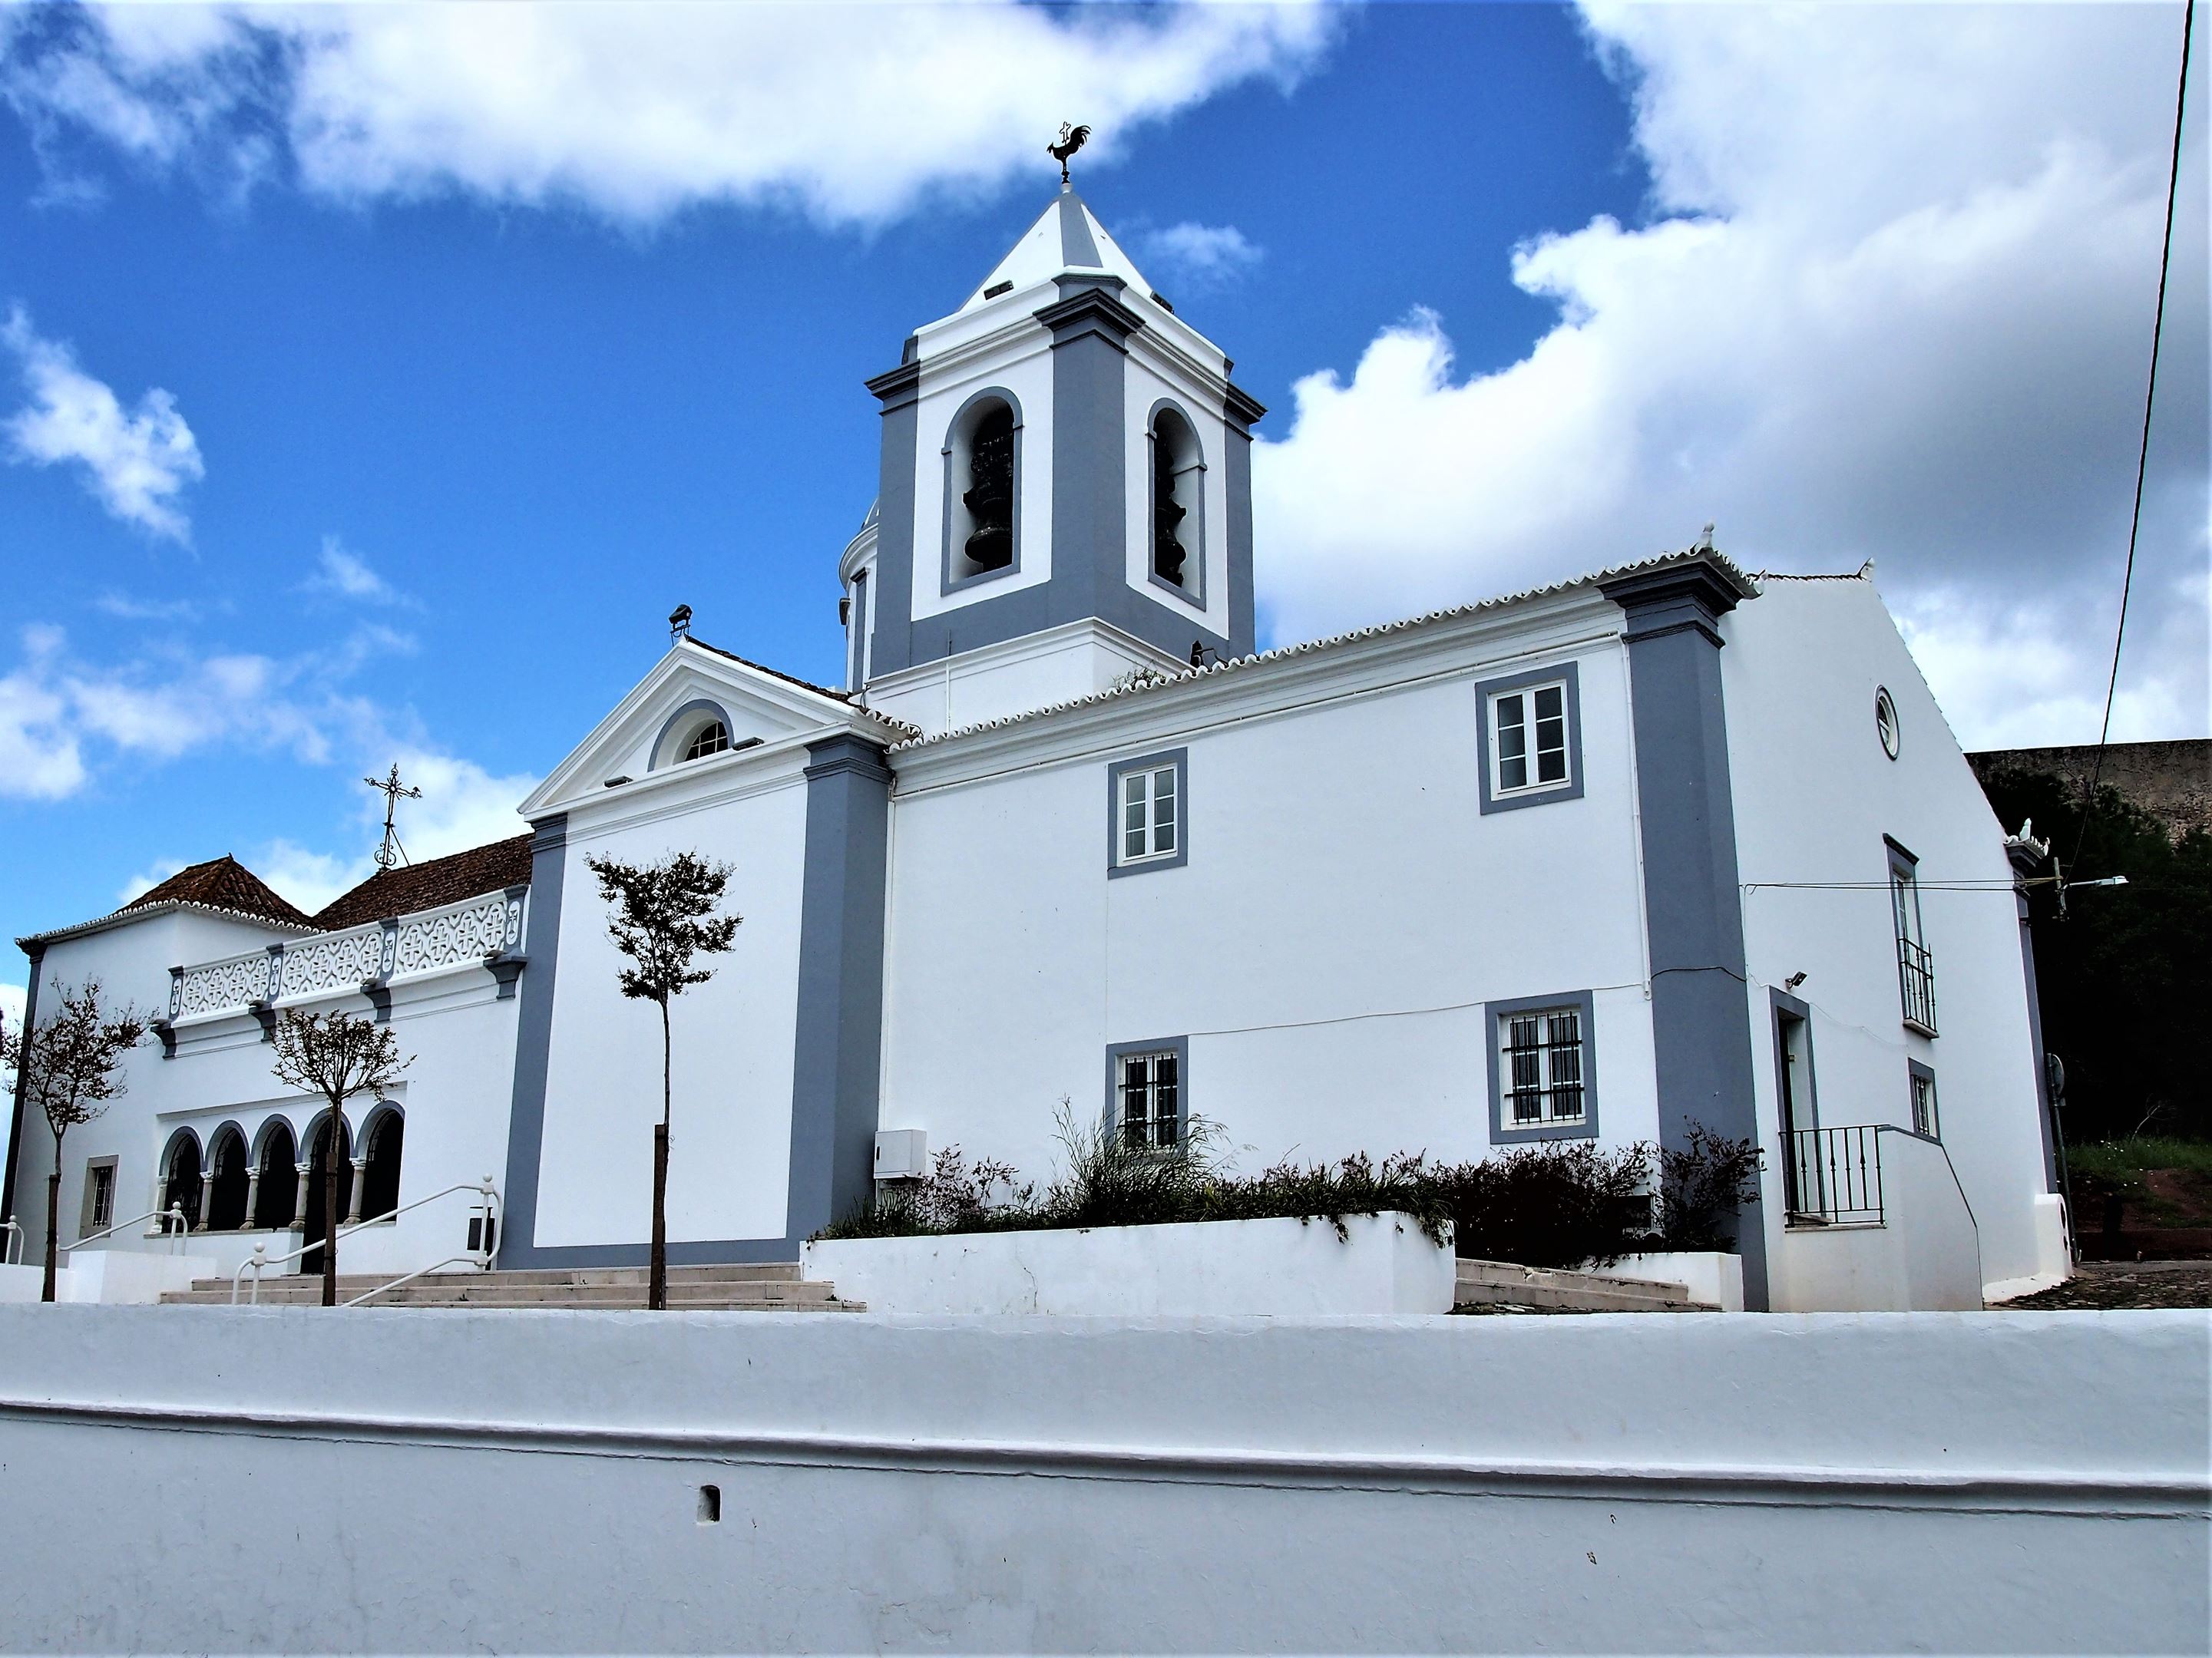 The Igreja de Nossa Senhora dos Mártires - The Church of Our Lady of the Martyrs, Castro Marim